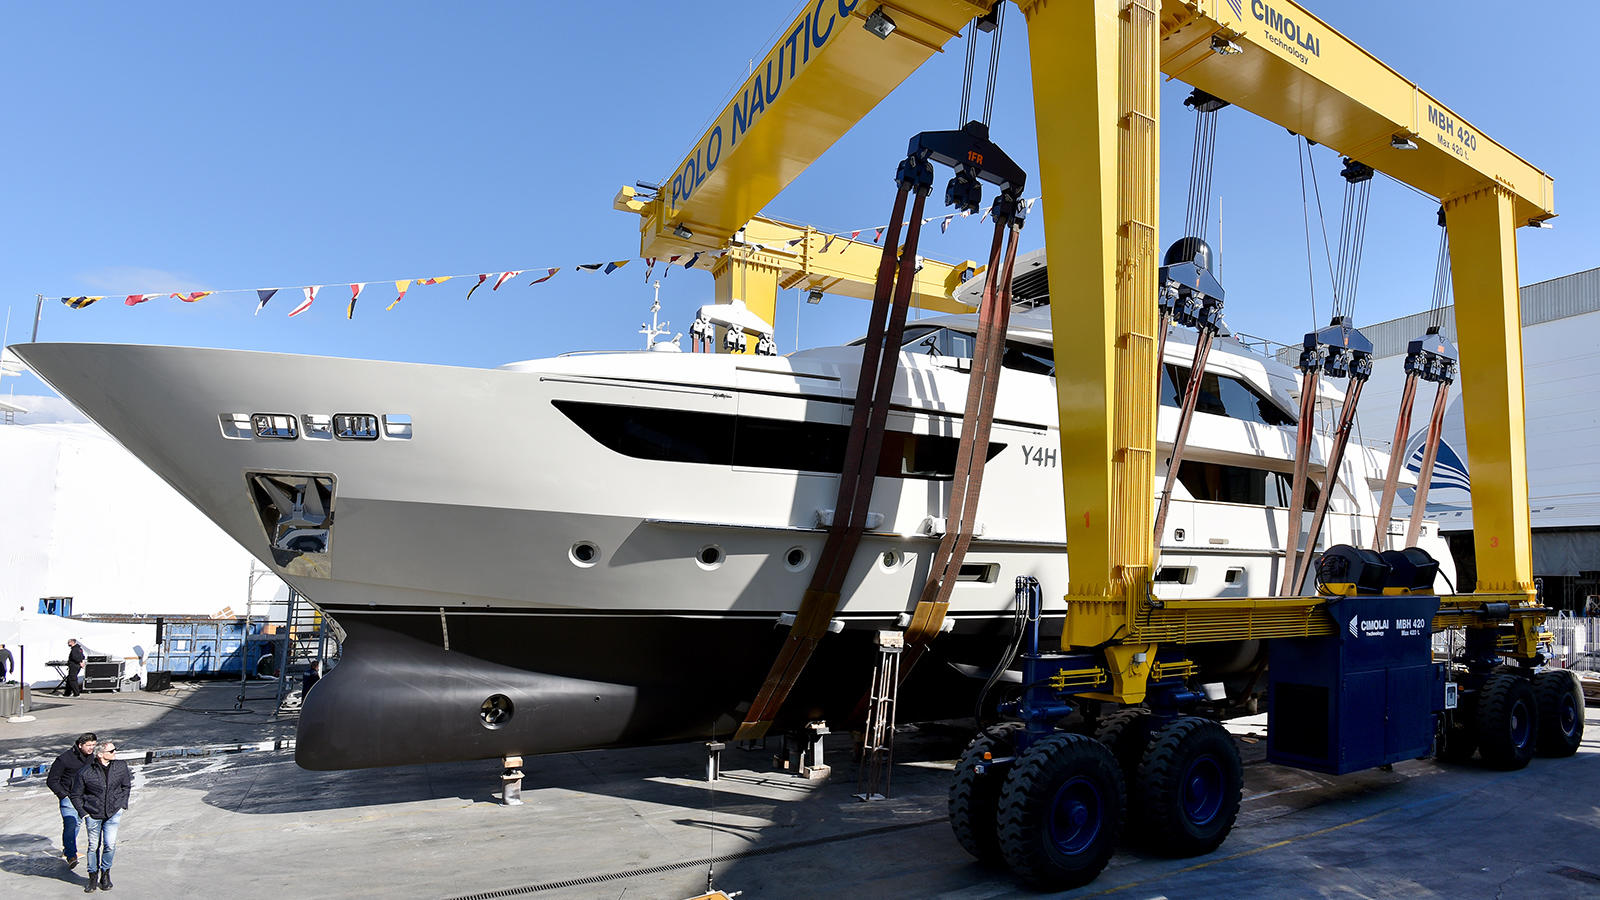 Motor Yacht Y4H At Launch